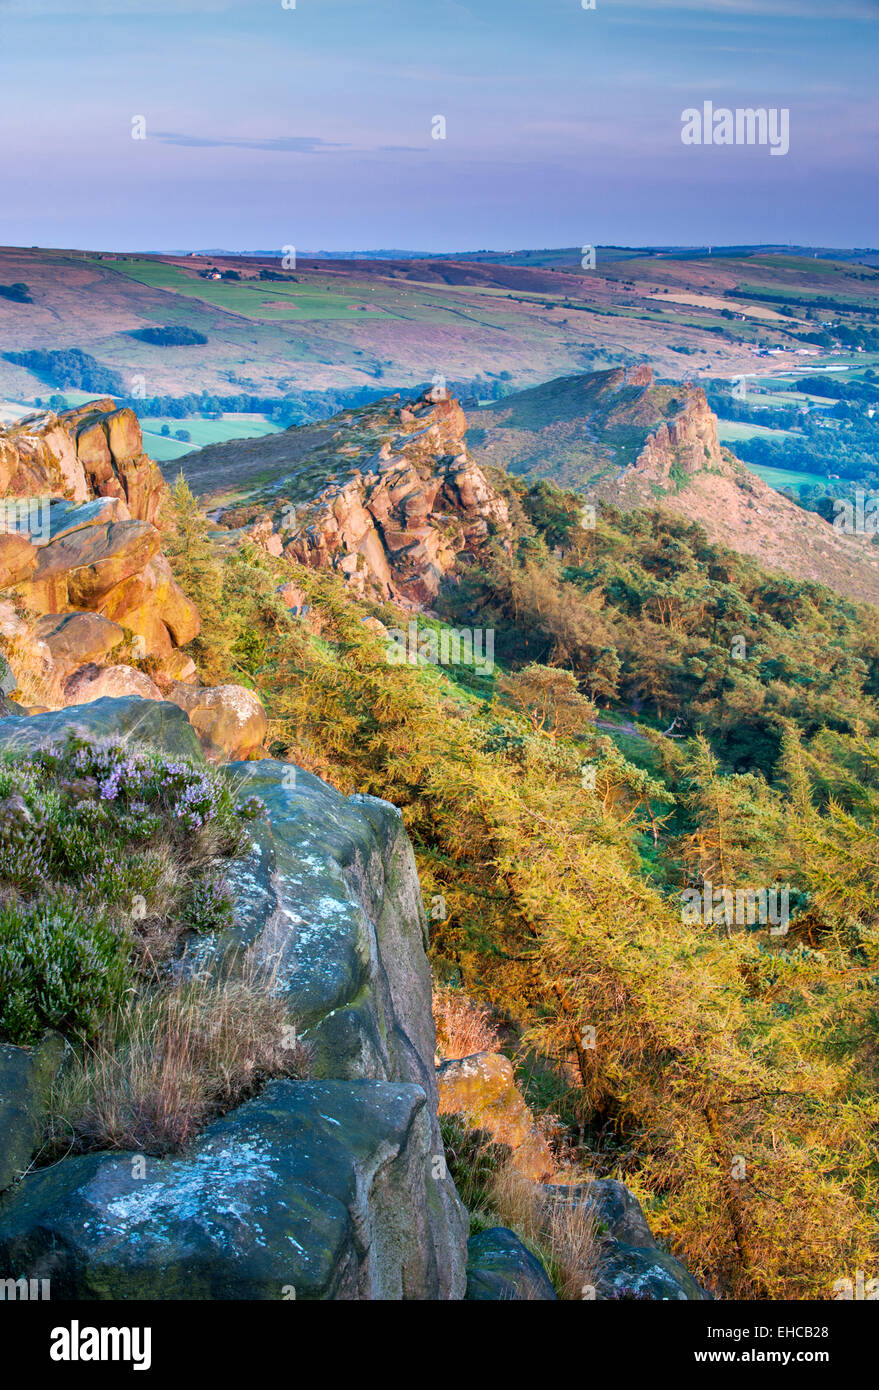 Evening Light on The Roaches, Peak District National Park, Staffordshire, England, UK - Stock Image